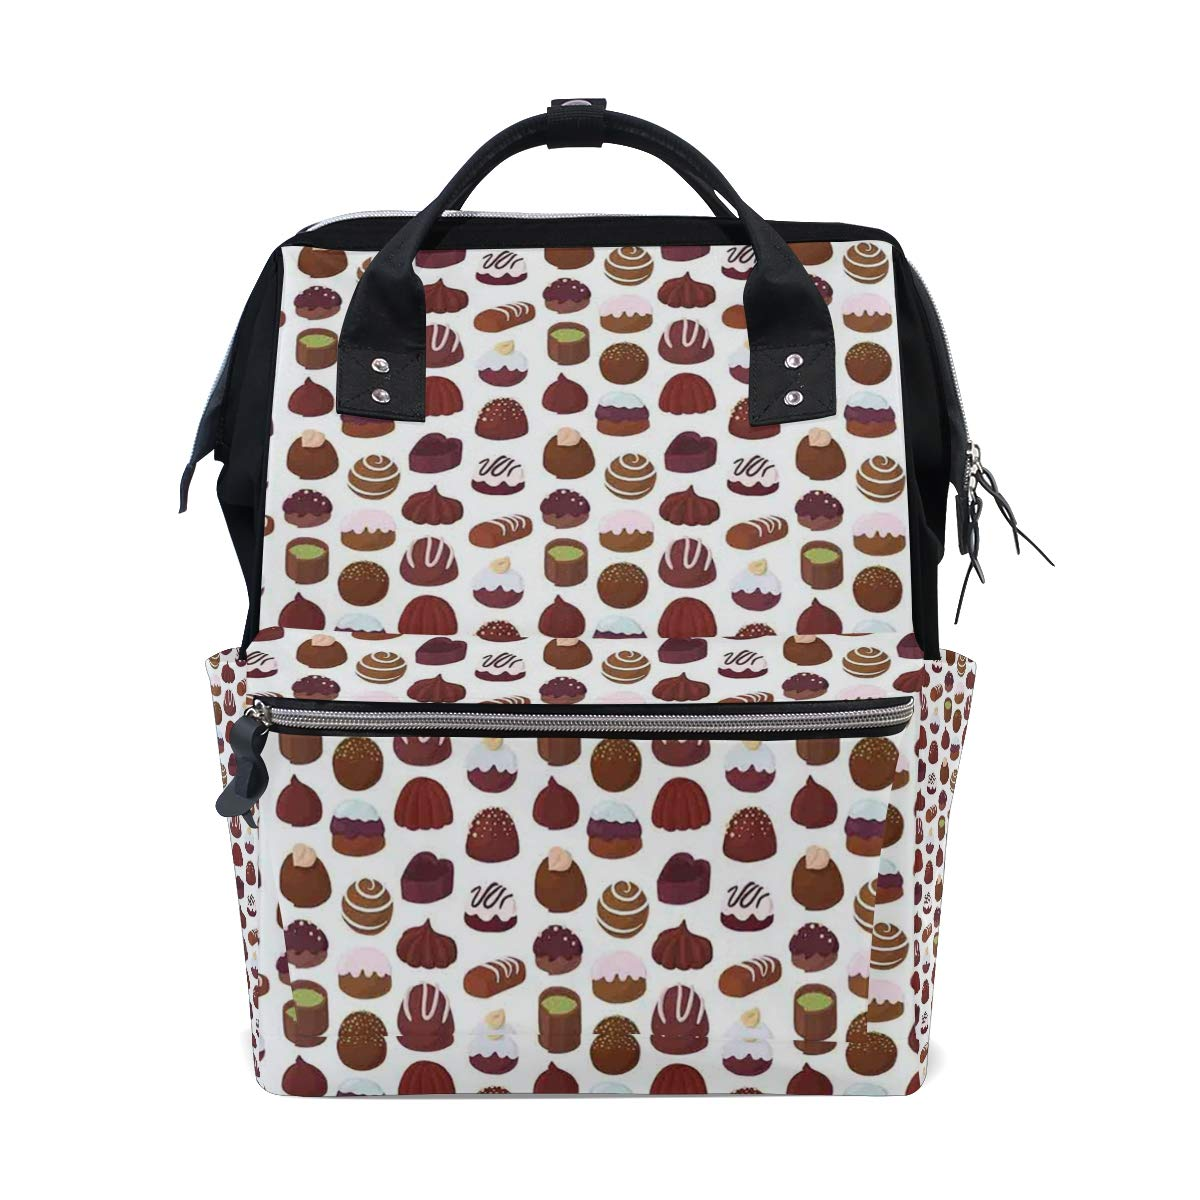 MIFSOIAVV Cupcake Muffin Donuts Cookie Candy Bakery Good Pastry Sweets School Travel Daypack by MIFSOIAVV